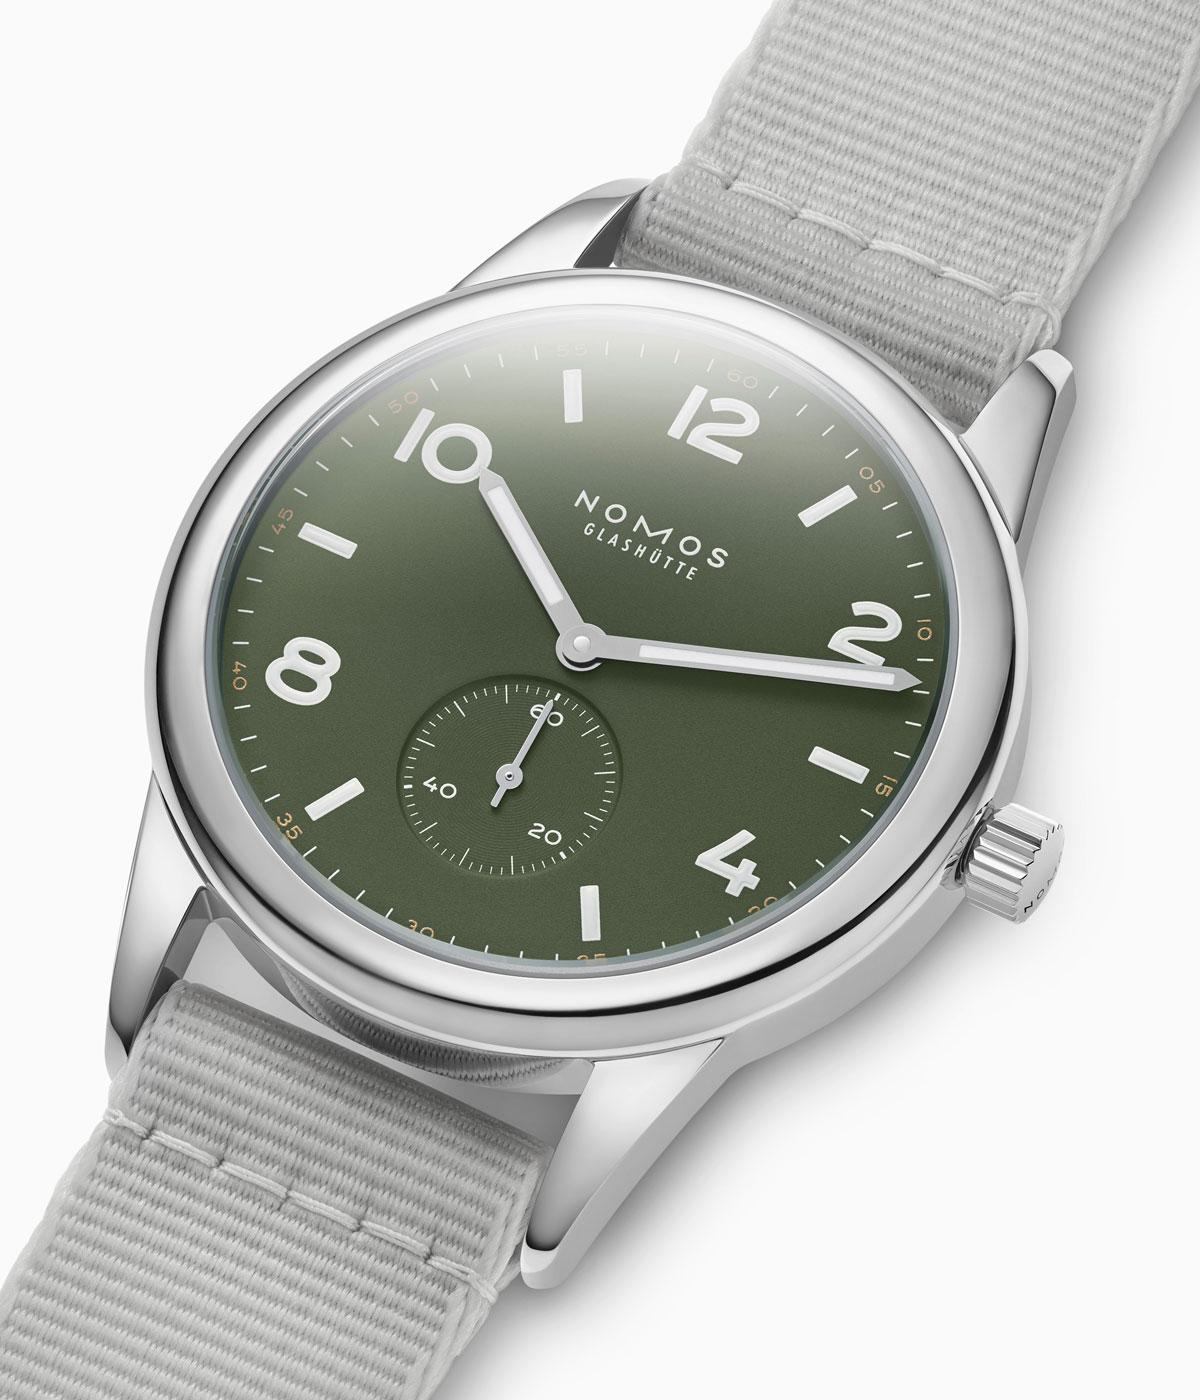 The muted colours of the new Nomos club watch